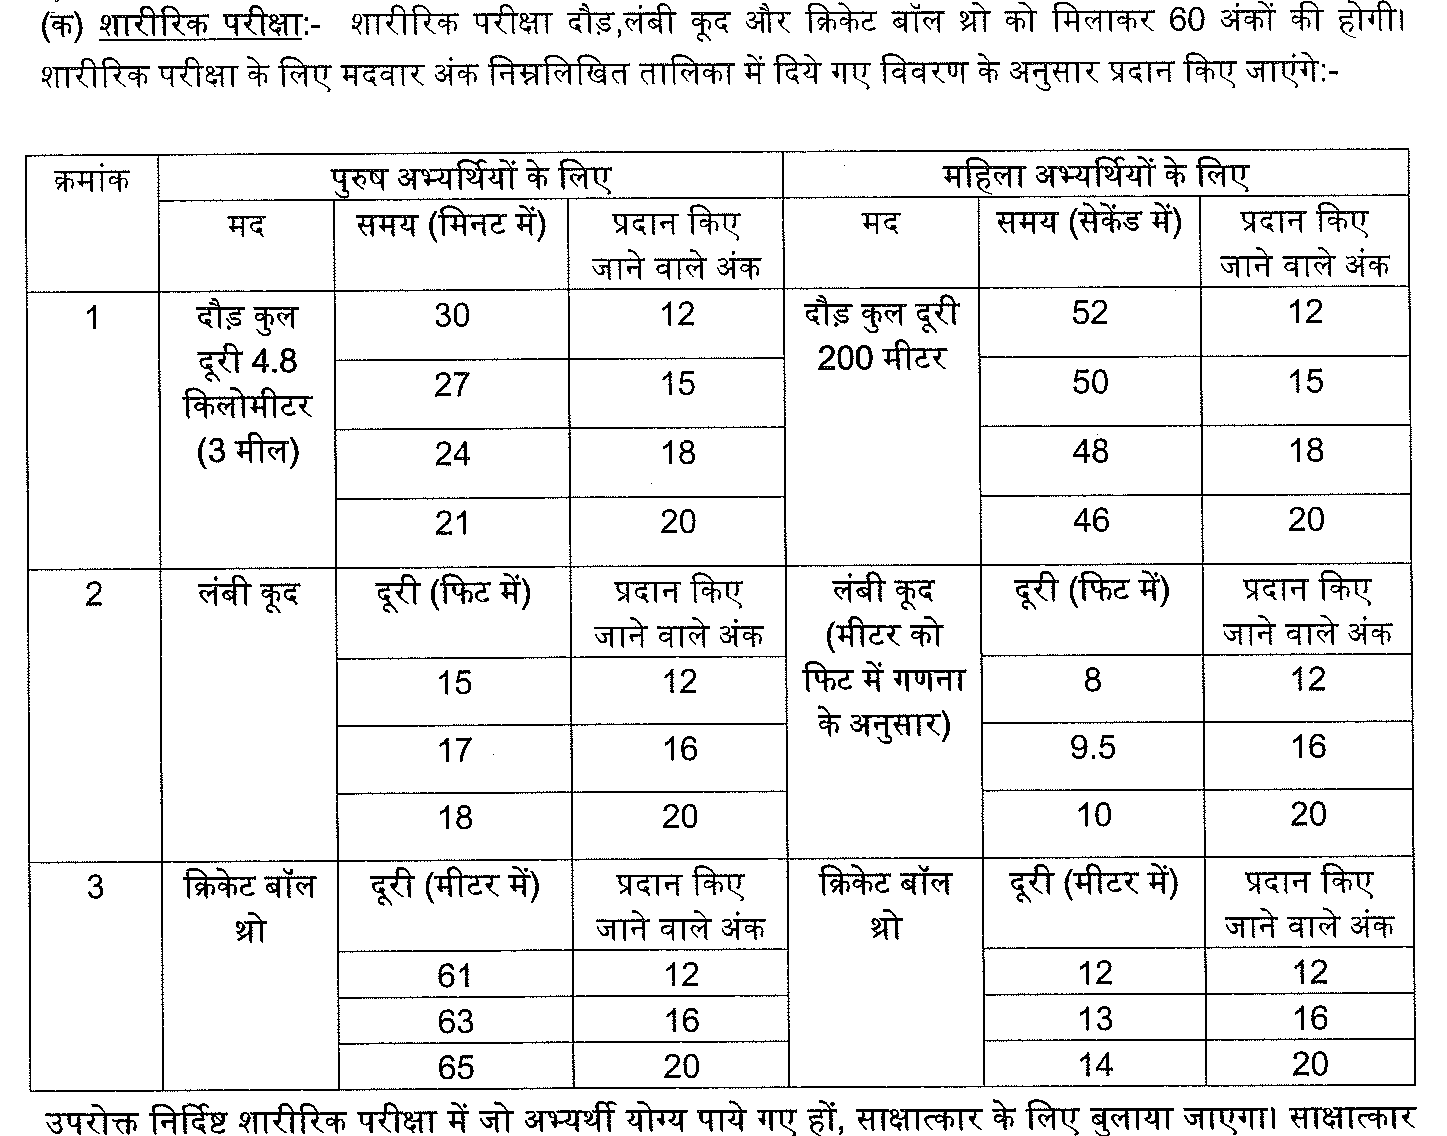 upsssc excise constable abkari sipahi 405 govt jobs general upsssc excise constable physical test running long jump cricket ball throw timings and distance details